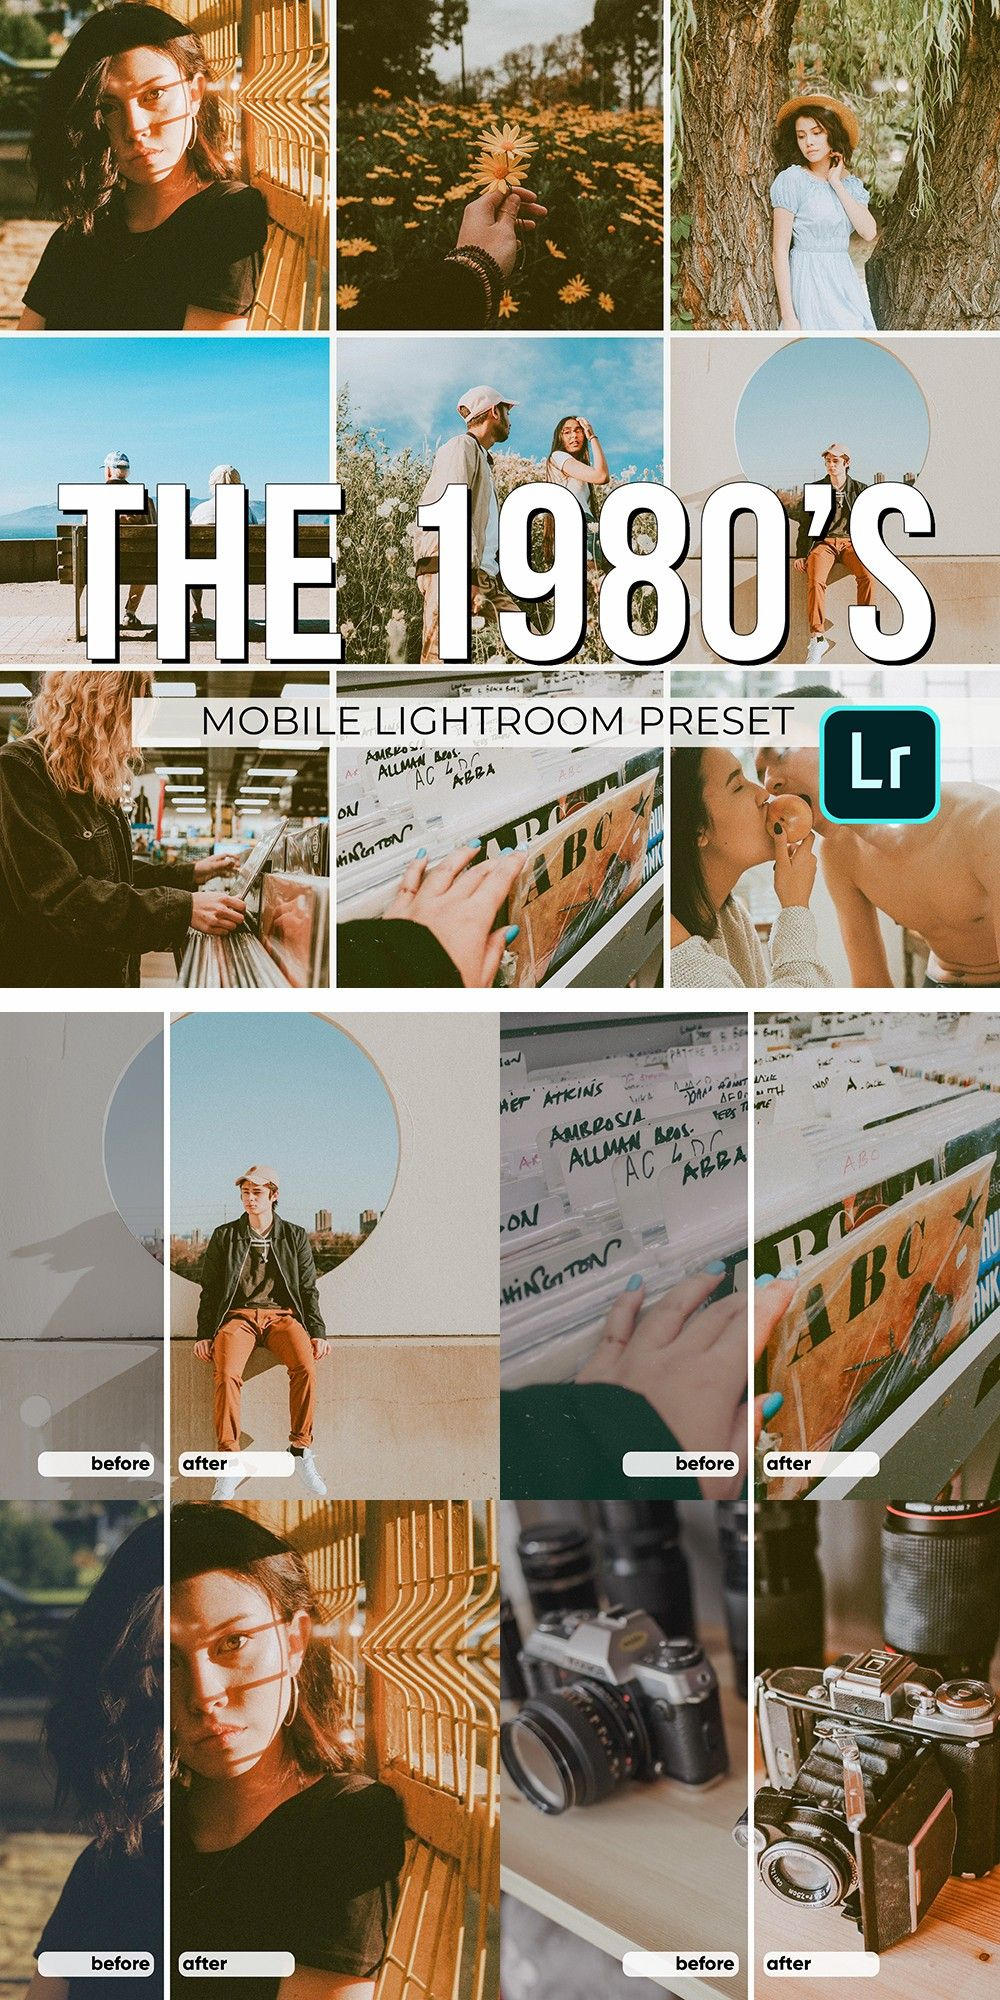 Mobile Lightroom Preset Vintage Film Photography Preset Vibrant Film Portrait Preset For Instagram In 2020 Lightroom Tutorial Photo Editing Vintage Lightroom Presets Lightroom Presets Tutorial